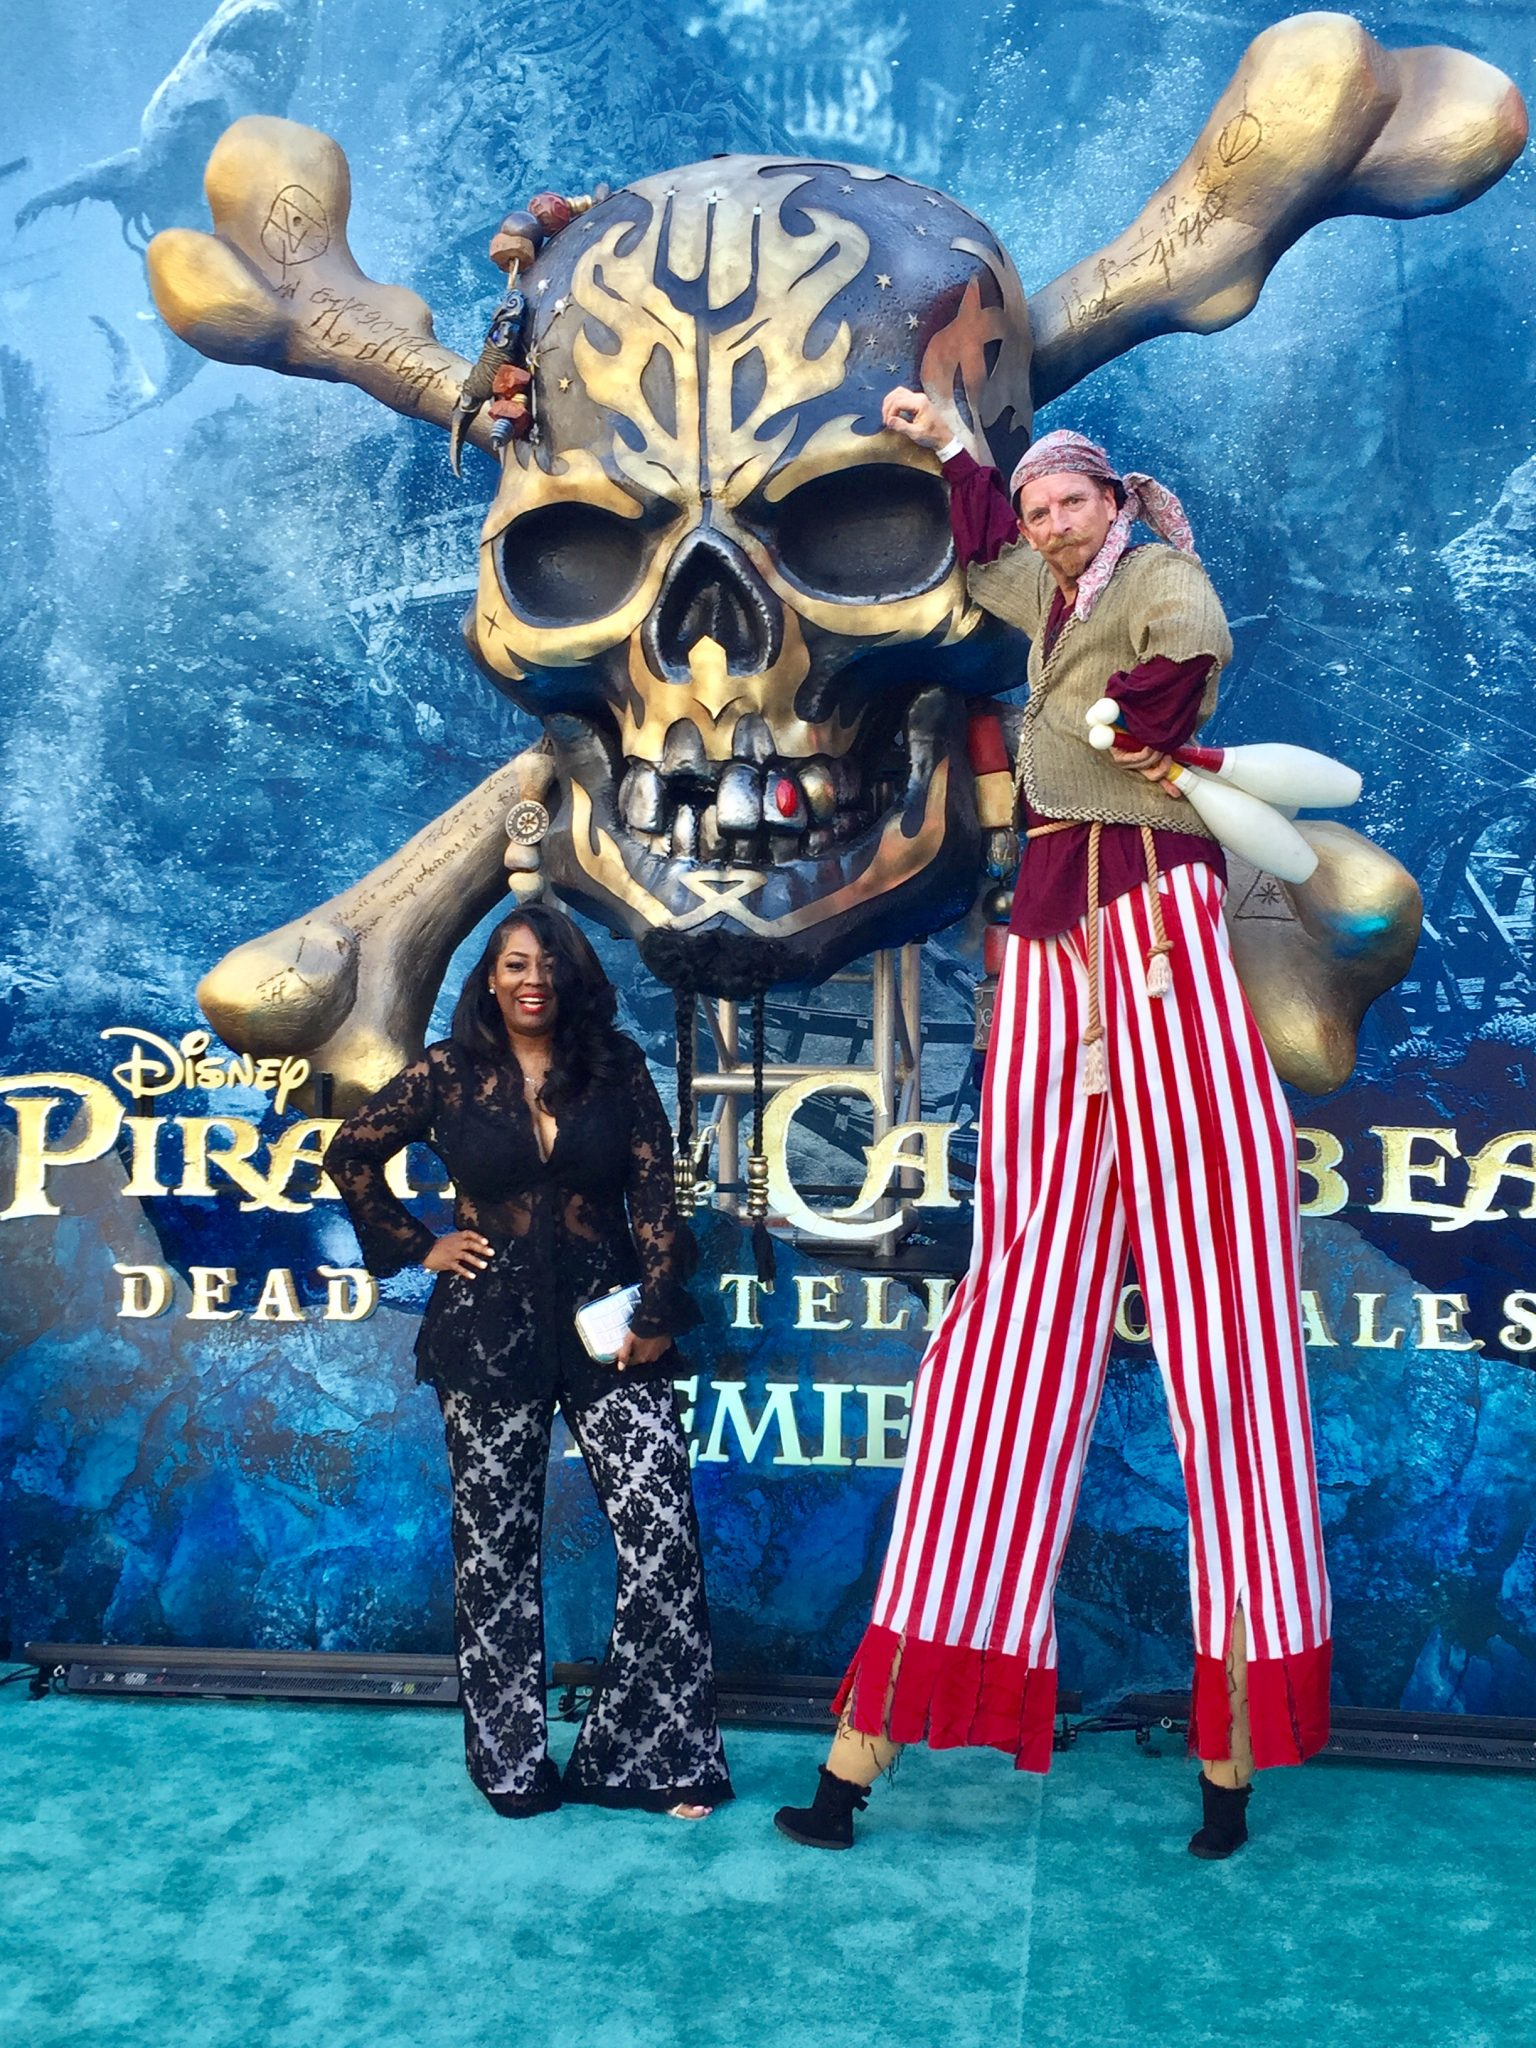 My Red Carpet Experience At Pirates Of The Caribbean Dead Men Tell No Tales Hollywood Premiere!